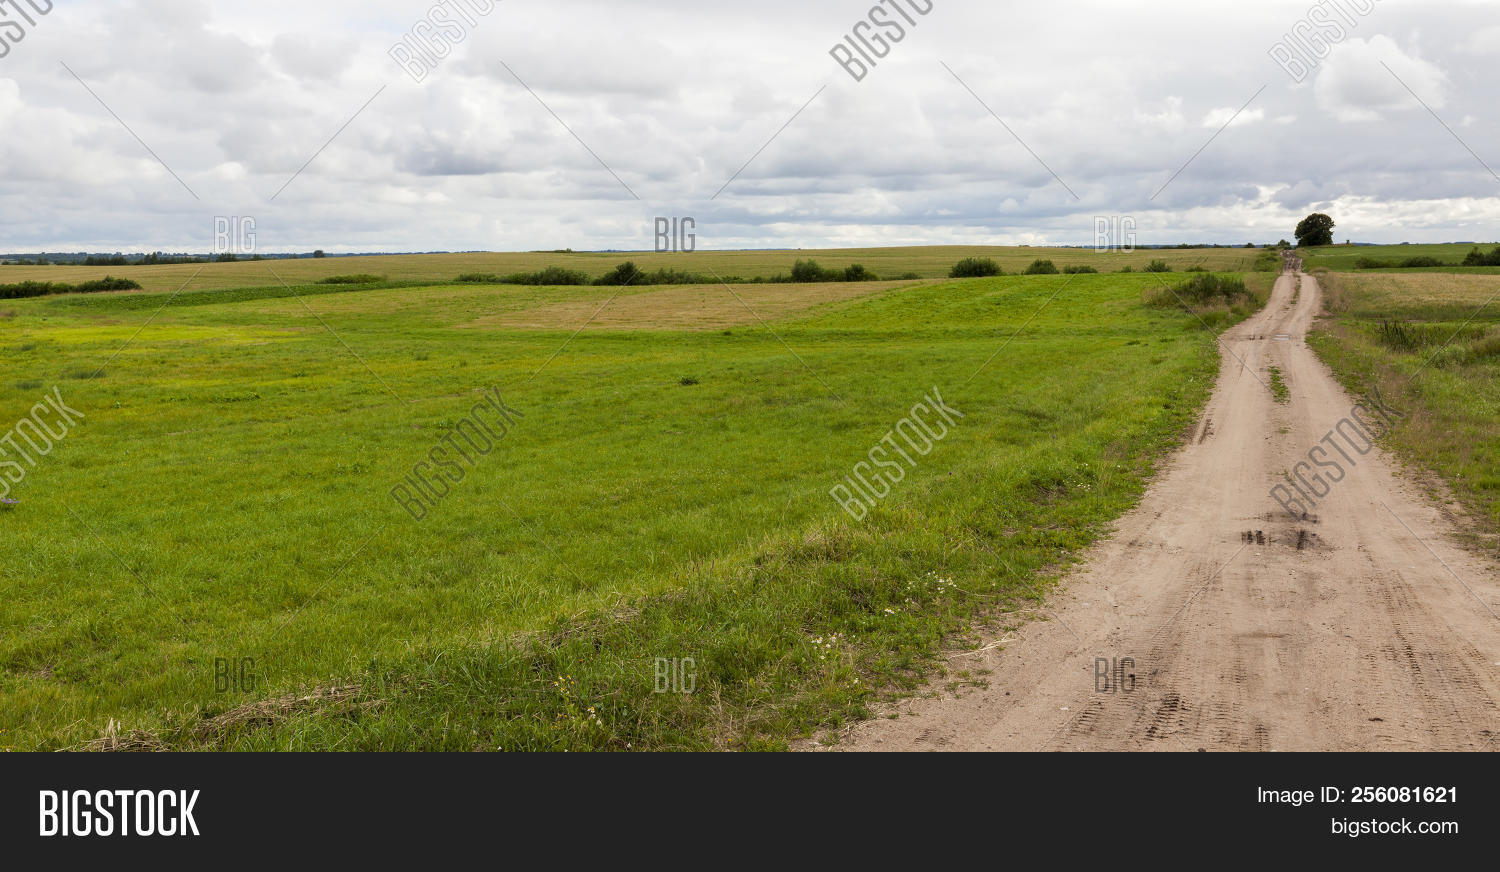 agricultural field image photo free trial bigstock